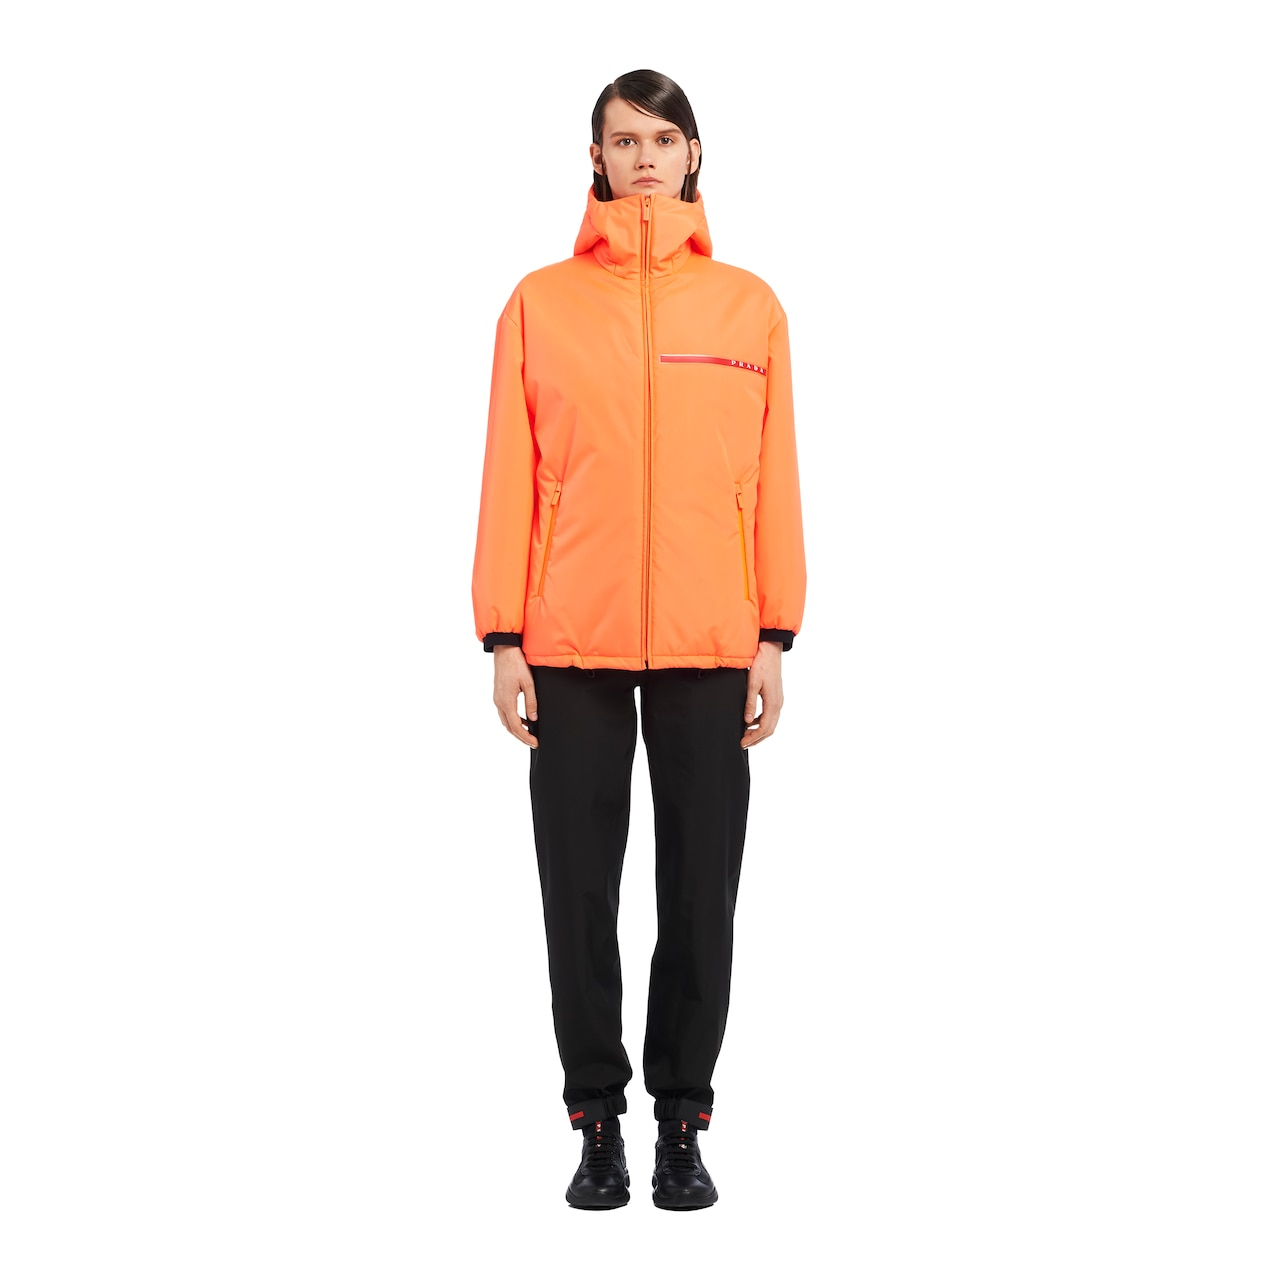 Padded technical fabric jacket